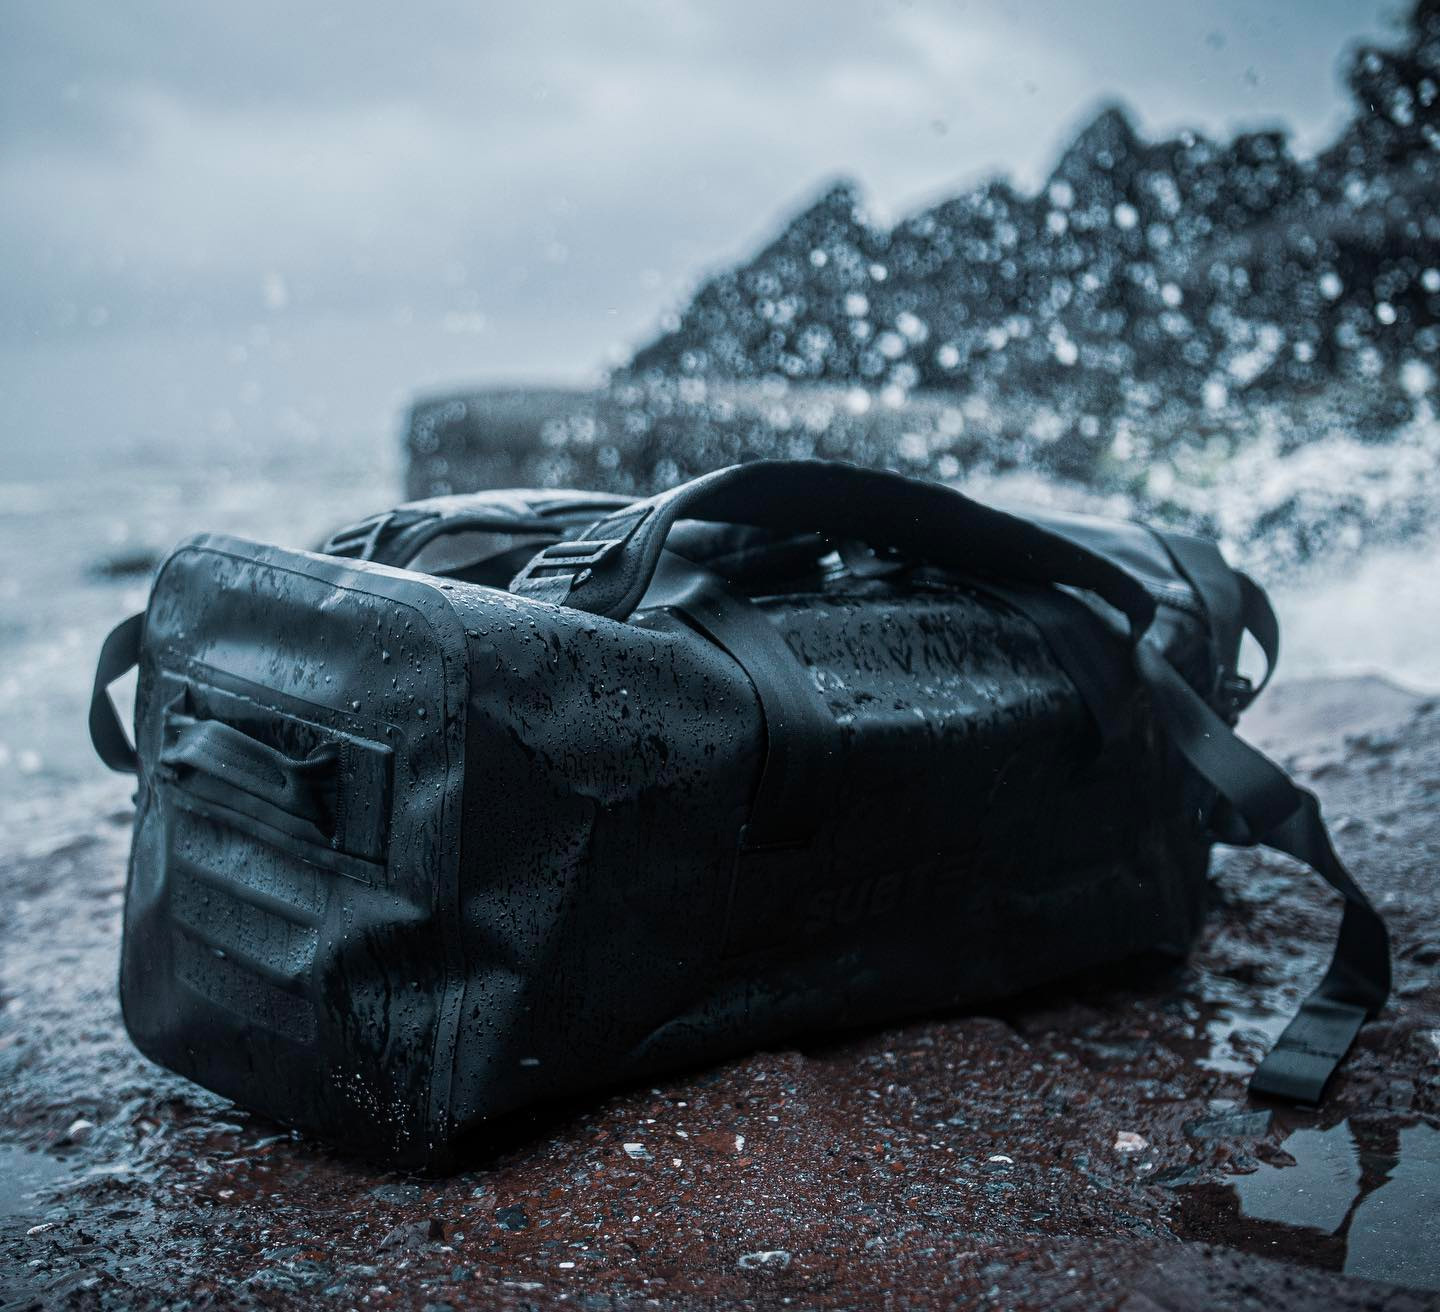 Go a Little Overboard: SubTech Dry Bag Pro 3.0 at werd.com